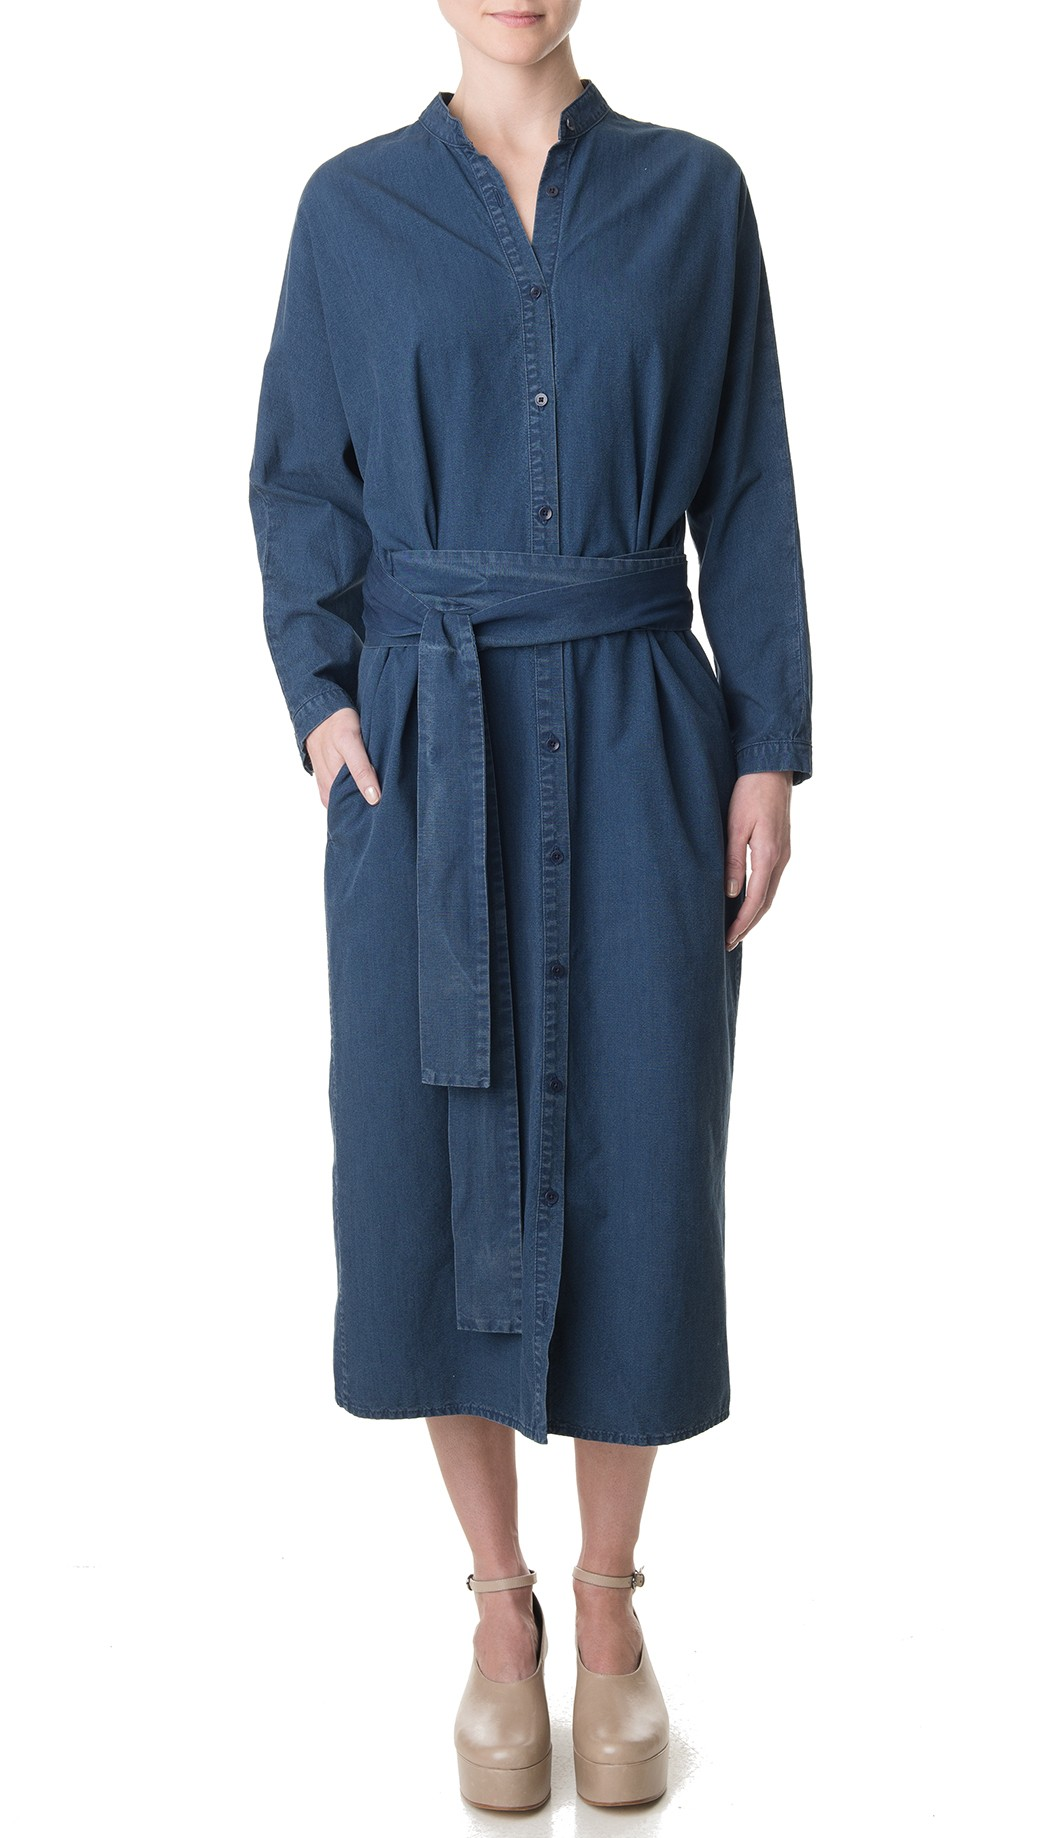 Tibi Lightweight Denim Shirt Dress